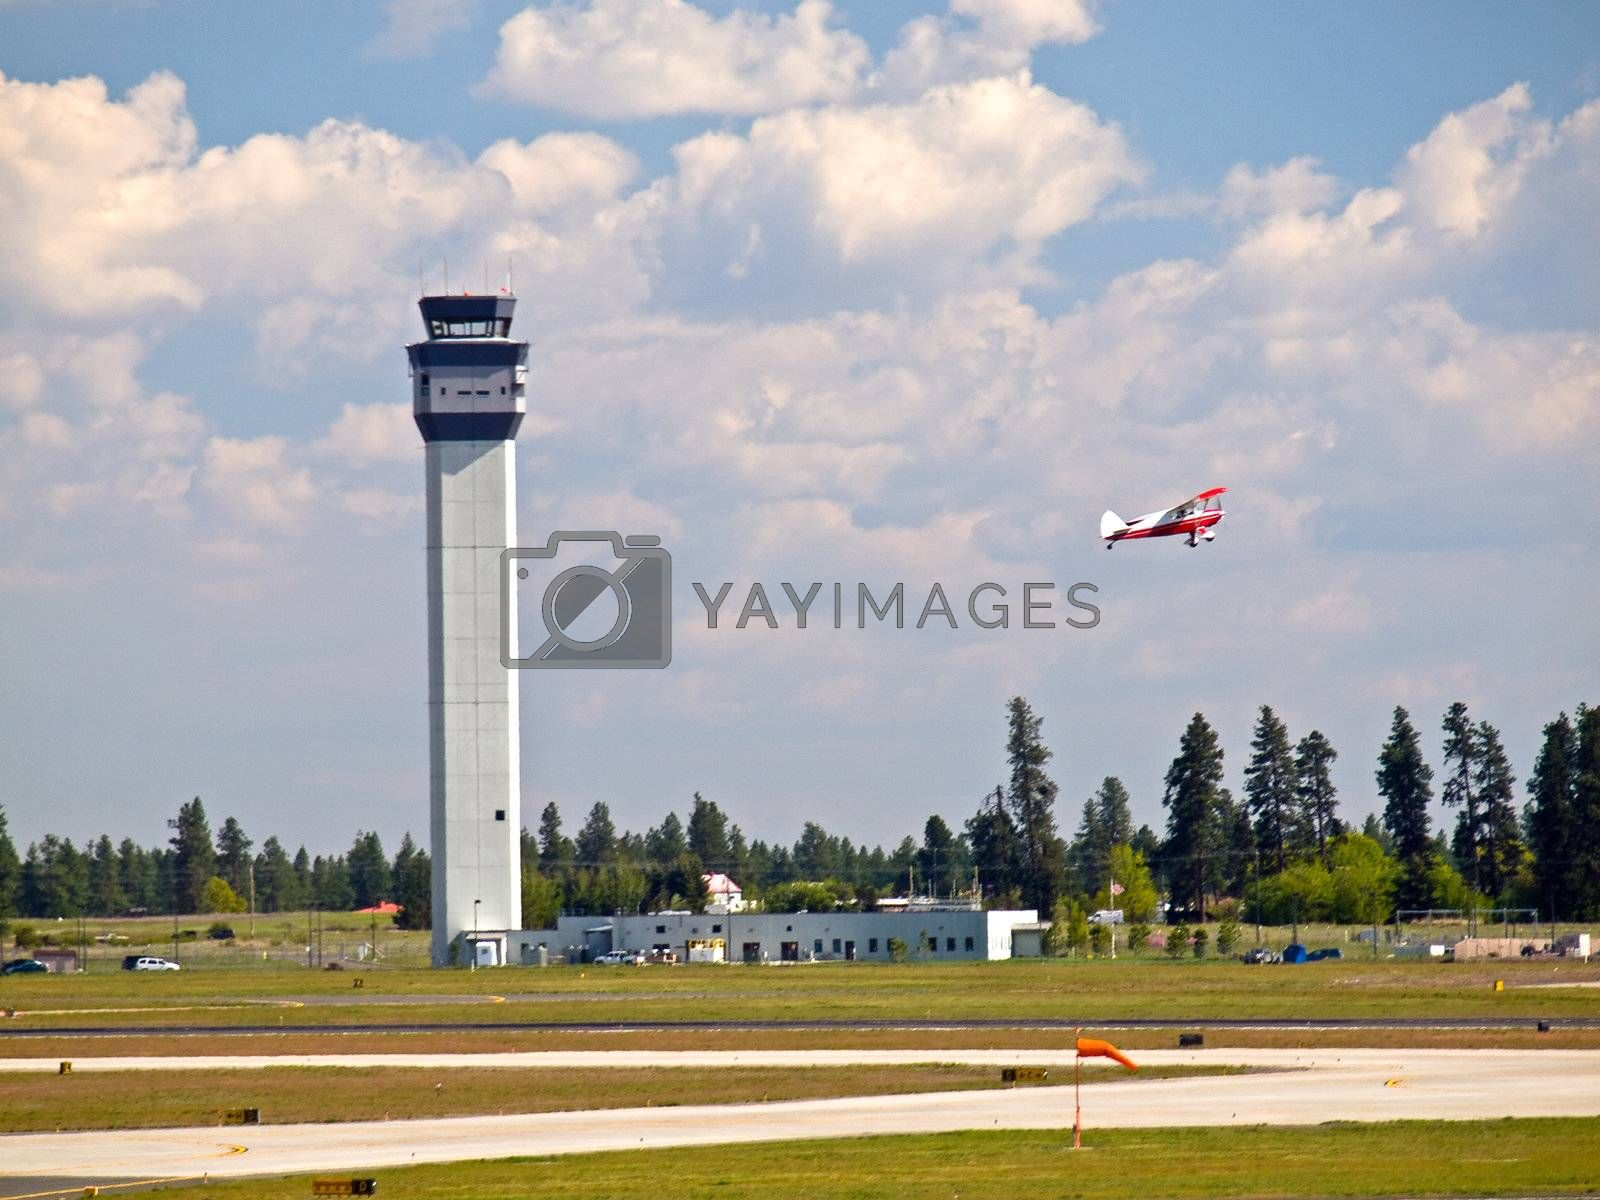 Air Traffic Control Tower of a Modern Airport with Aircraft Taking Off